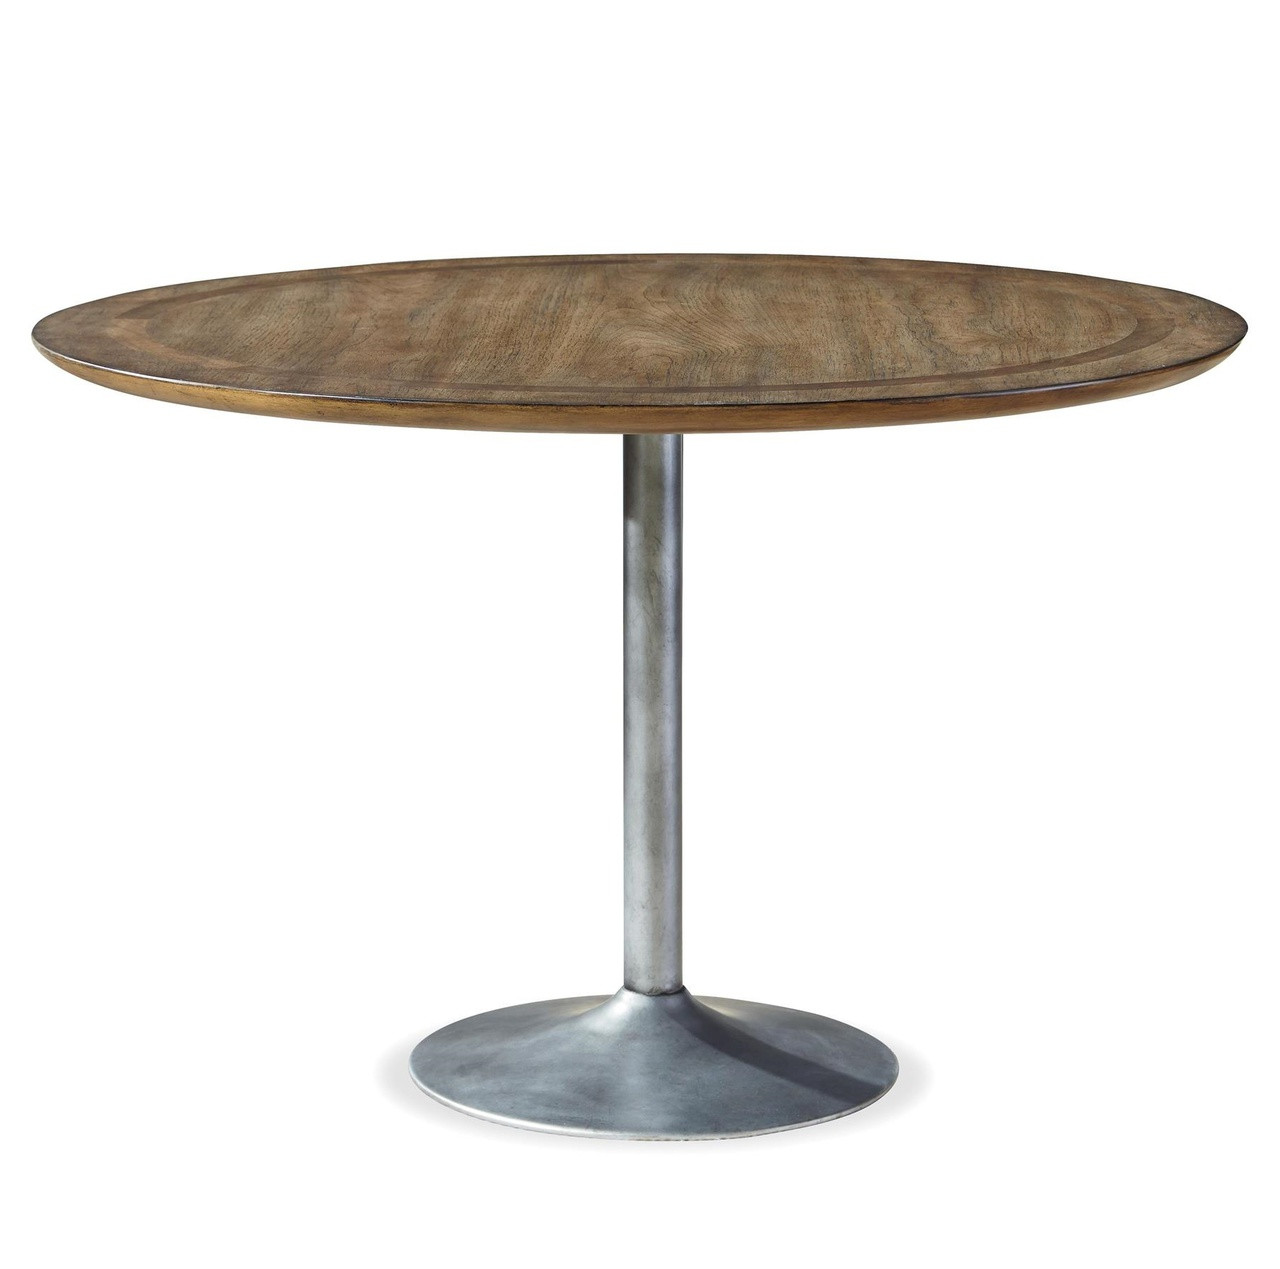 Lovely Maison Industrial Metal Pedestal Round Dining Table Nice Ideas